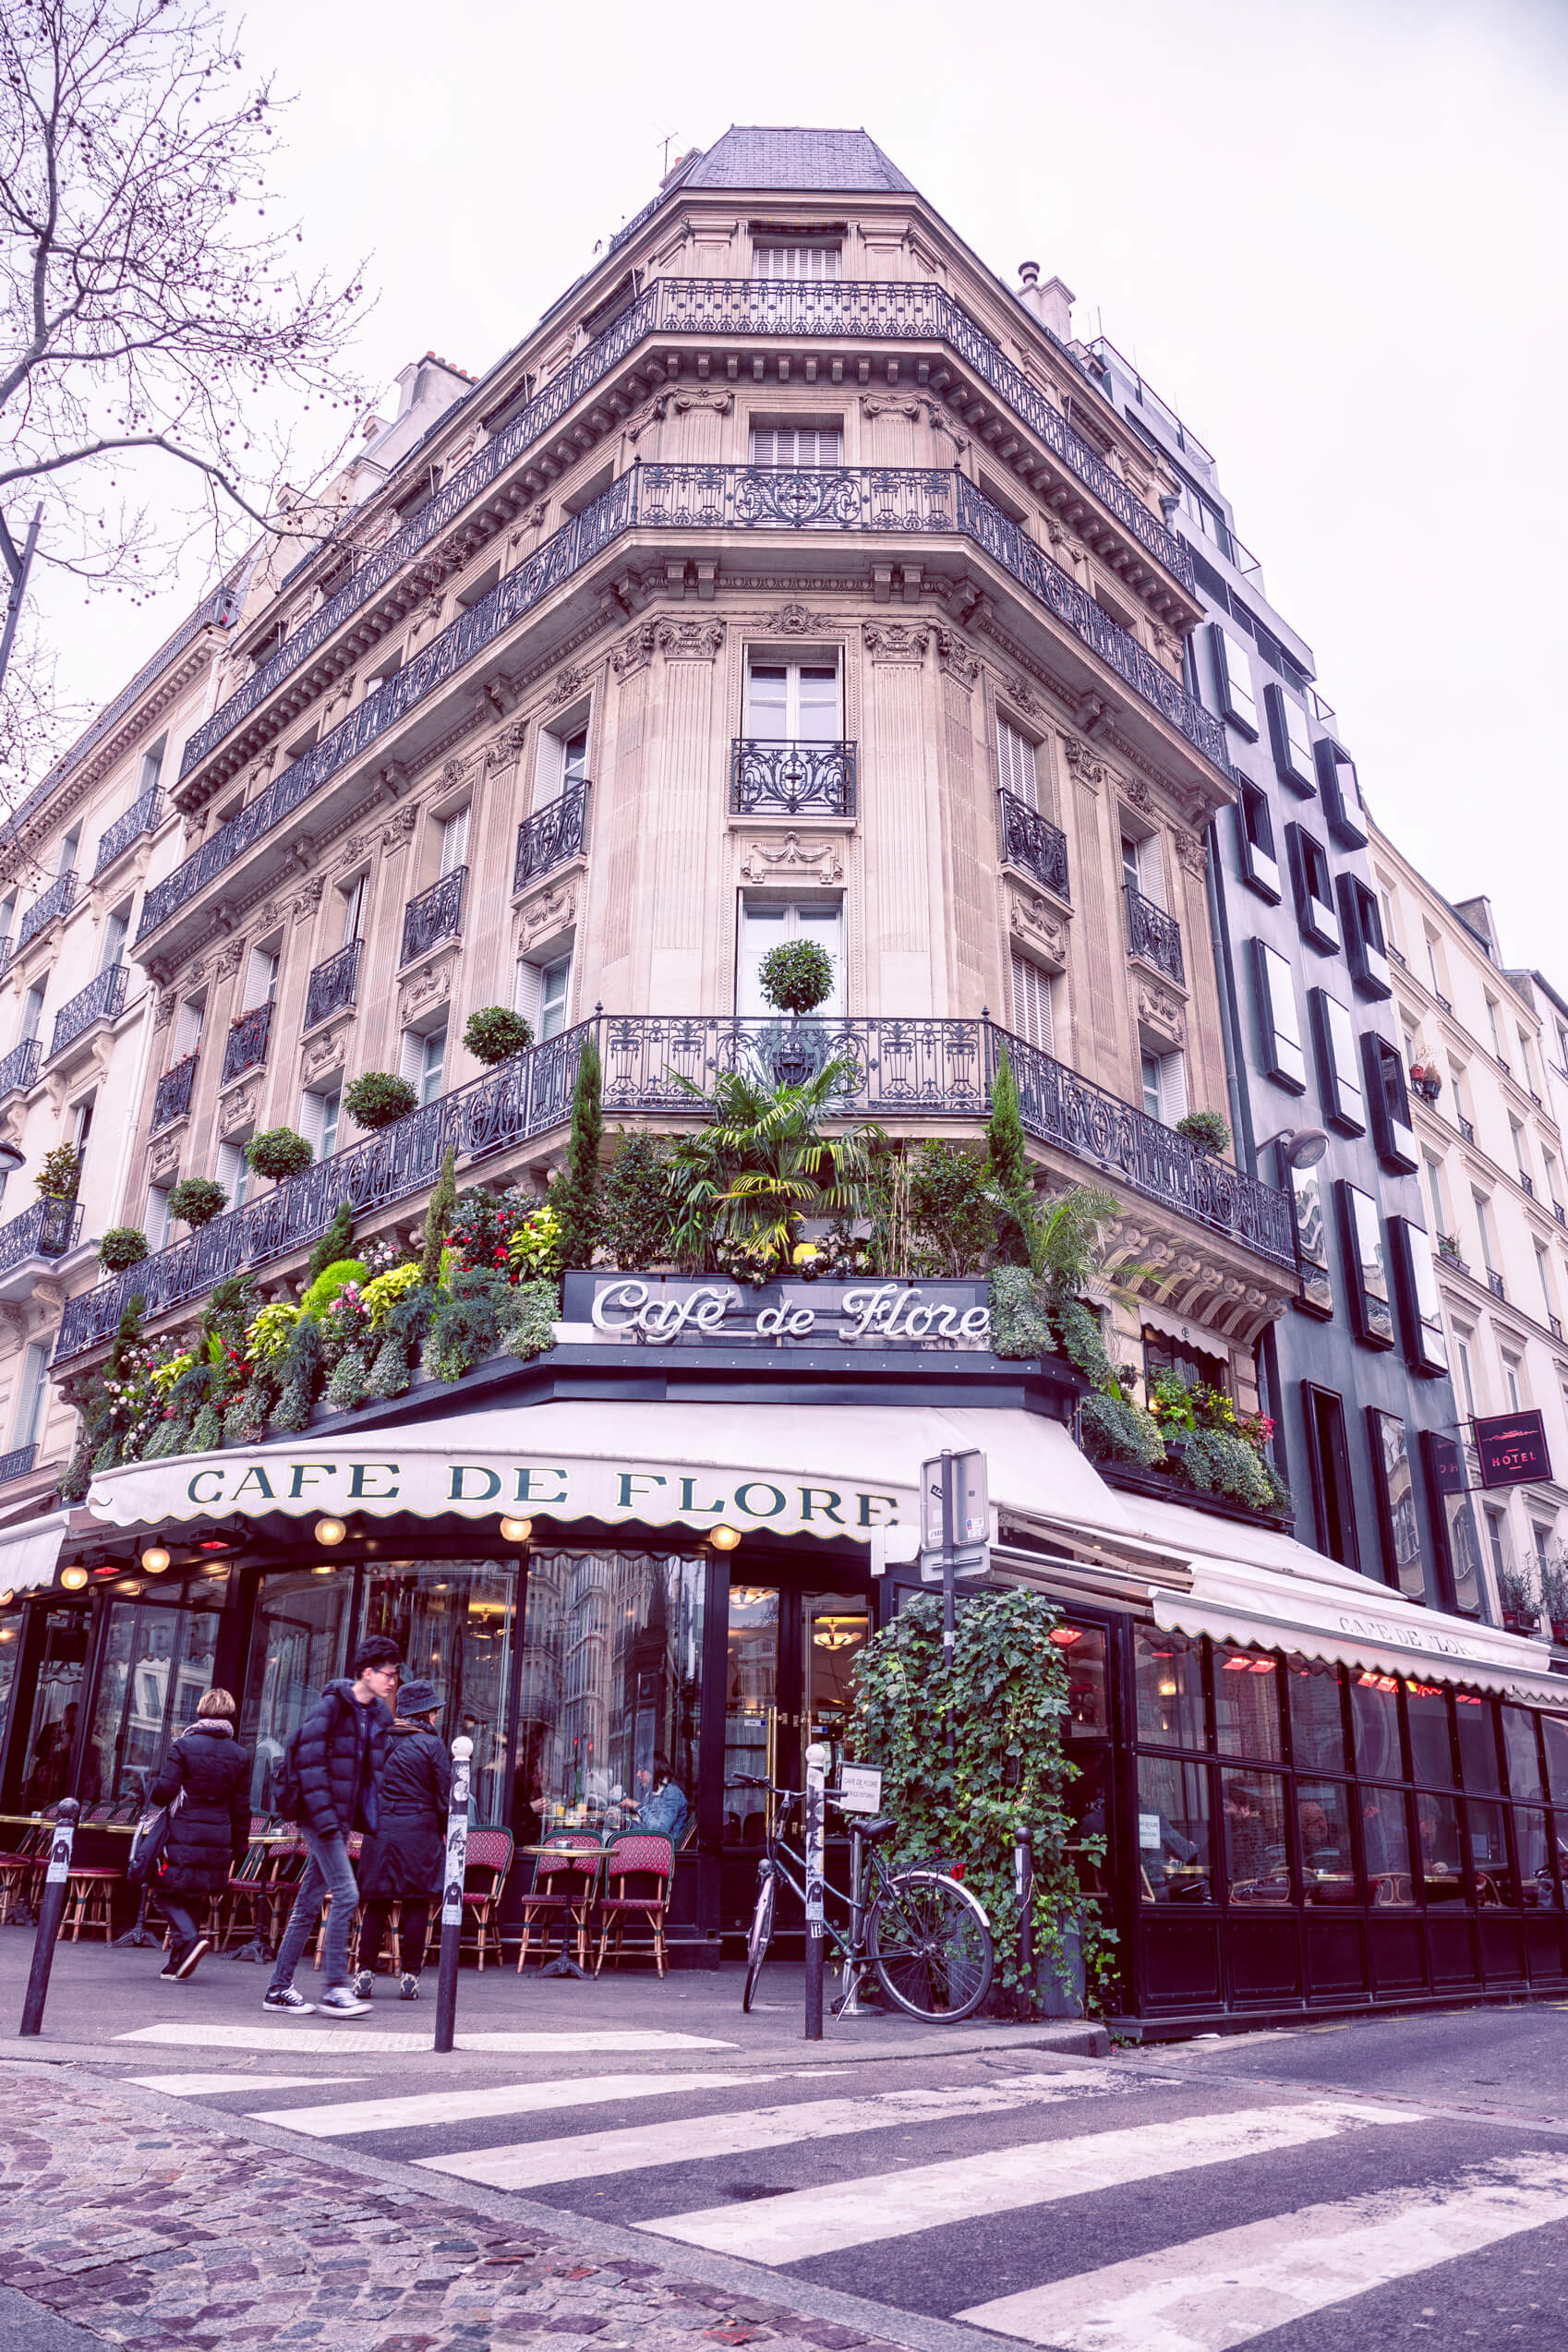 Paris Cafe de flore outside